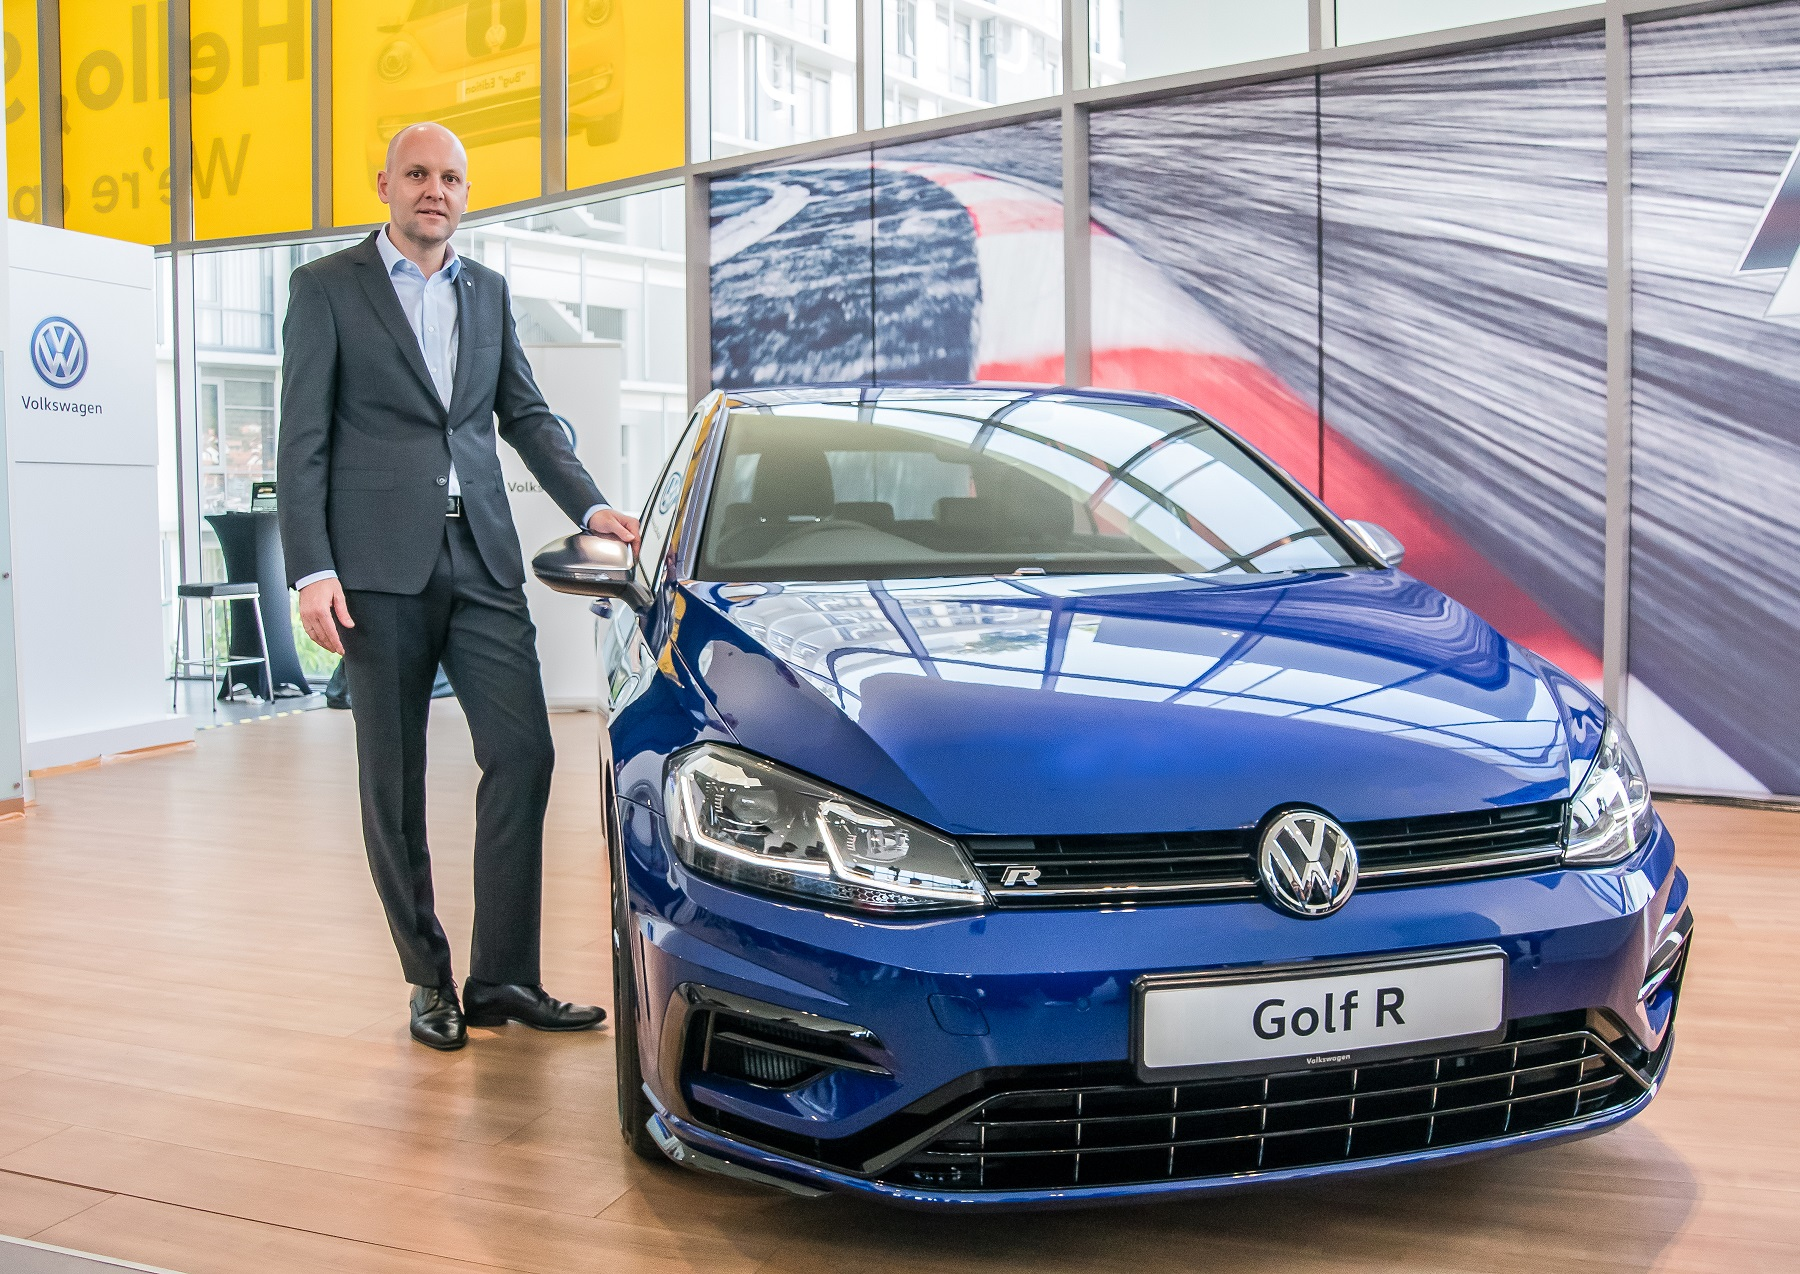 volkswagen golf  launched  expensive kensomuse